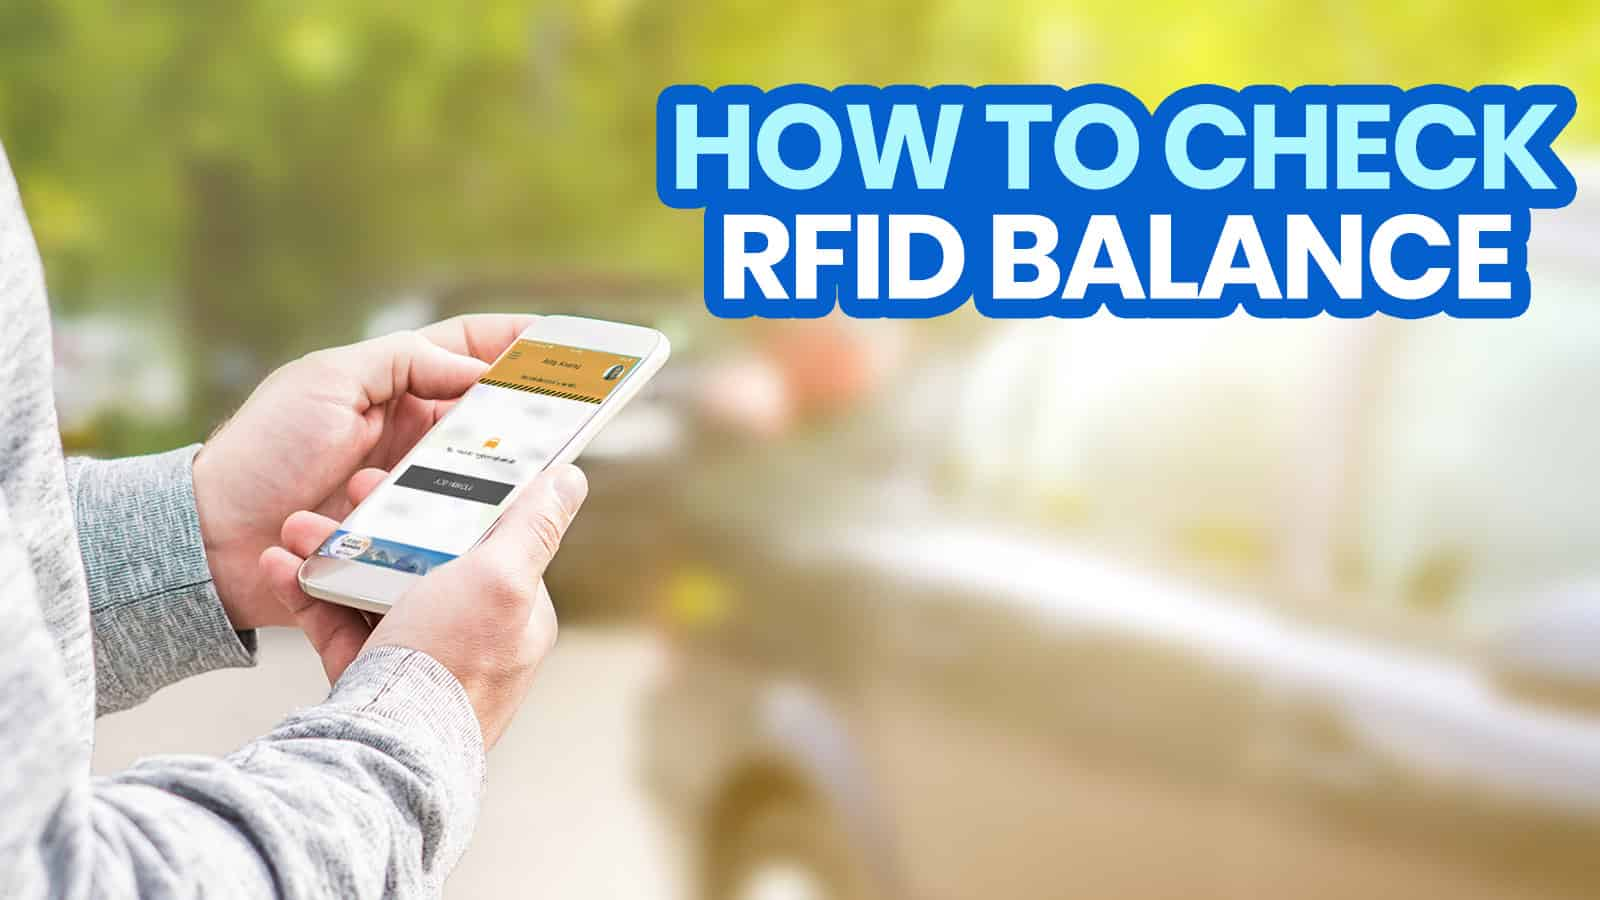 HOW TO CHECK RFID BALANCE 2021: EASYTRIP & AUTOSWEEP Balance Inquiry